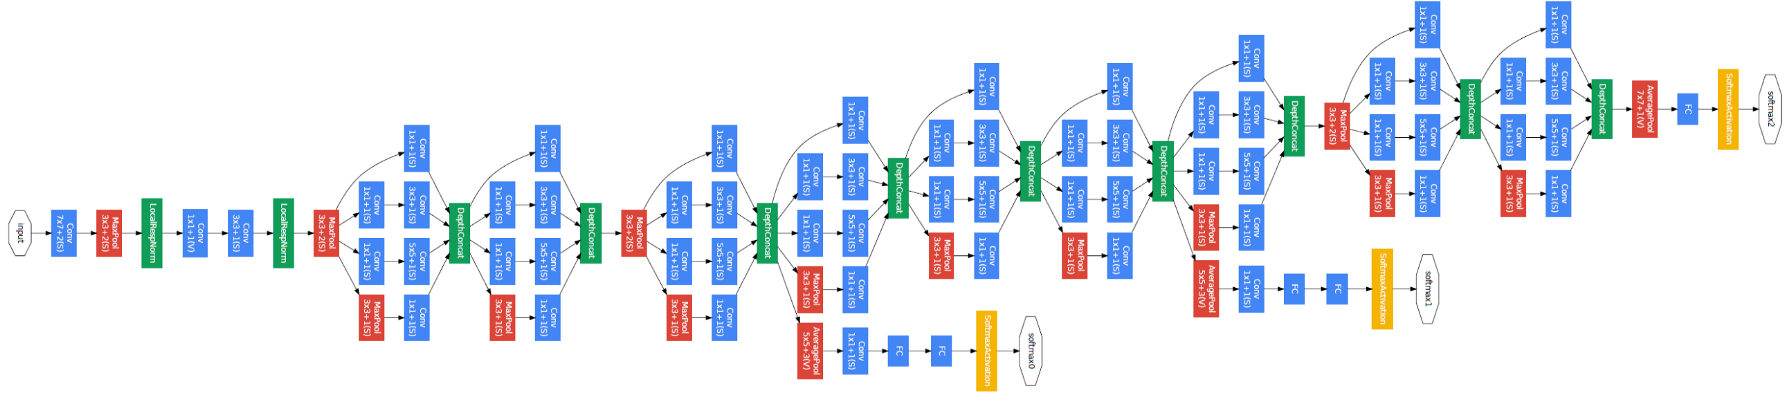 Understanding Inception Network from Scratch (with Python codes)